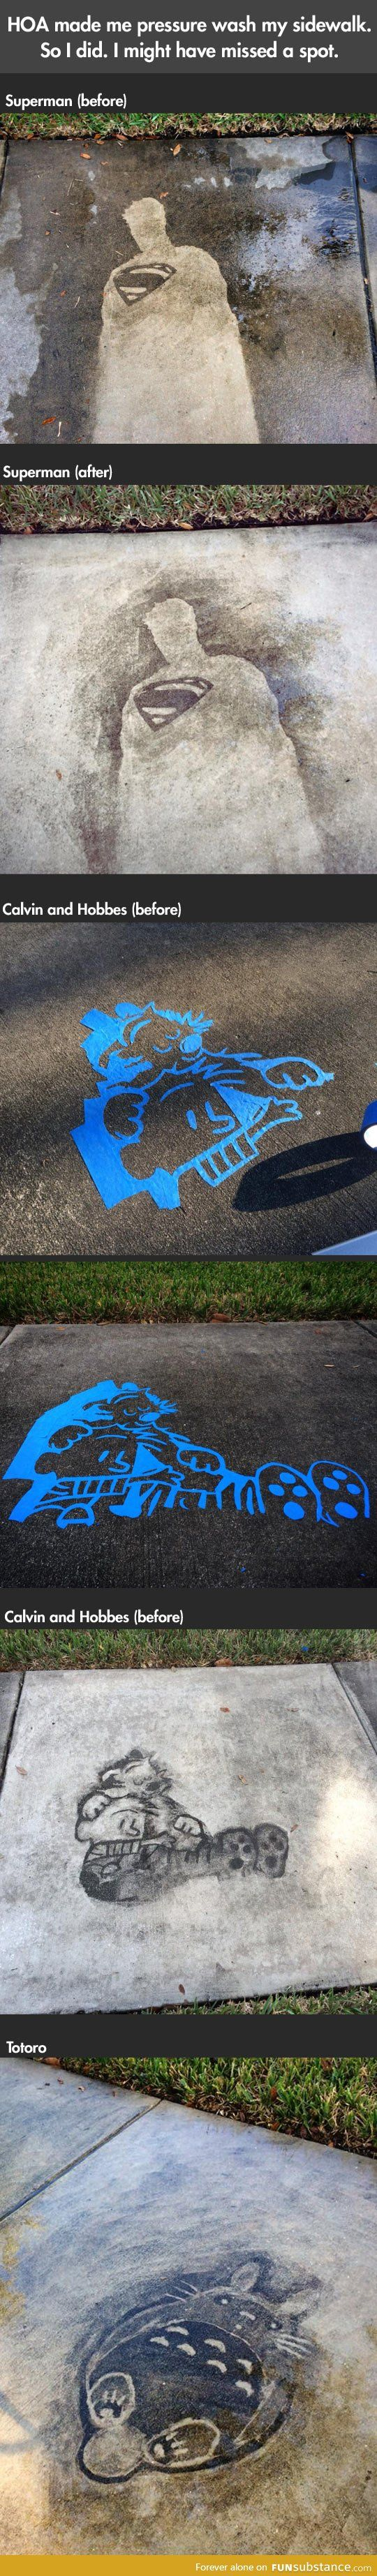 Comics drawn on a sidewalk with a pressure washer